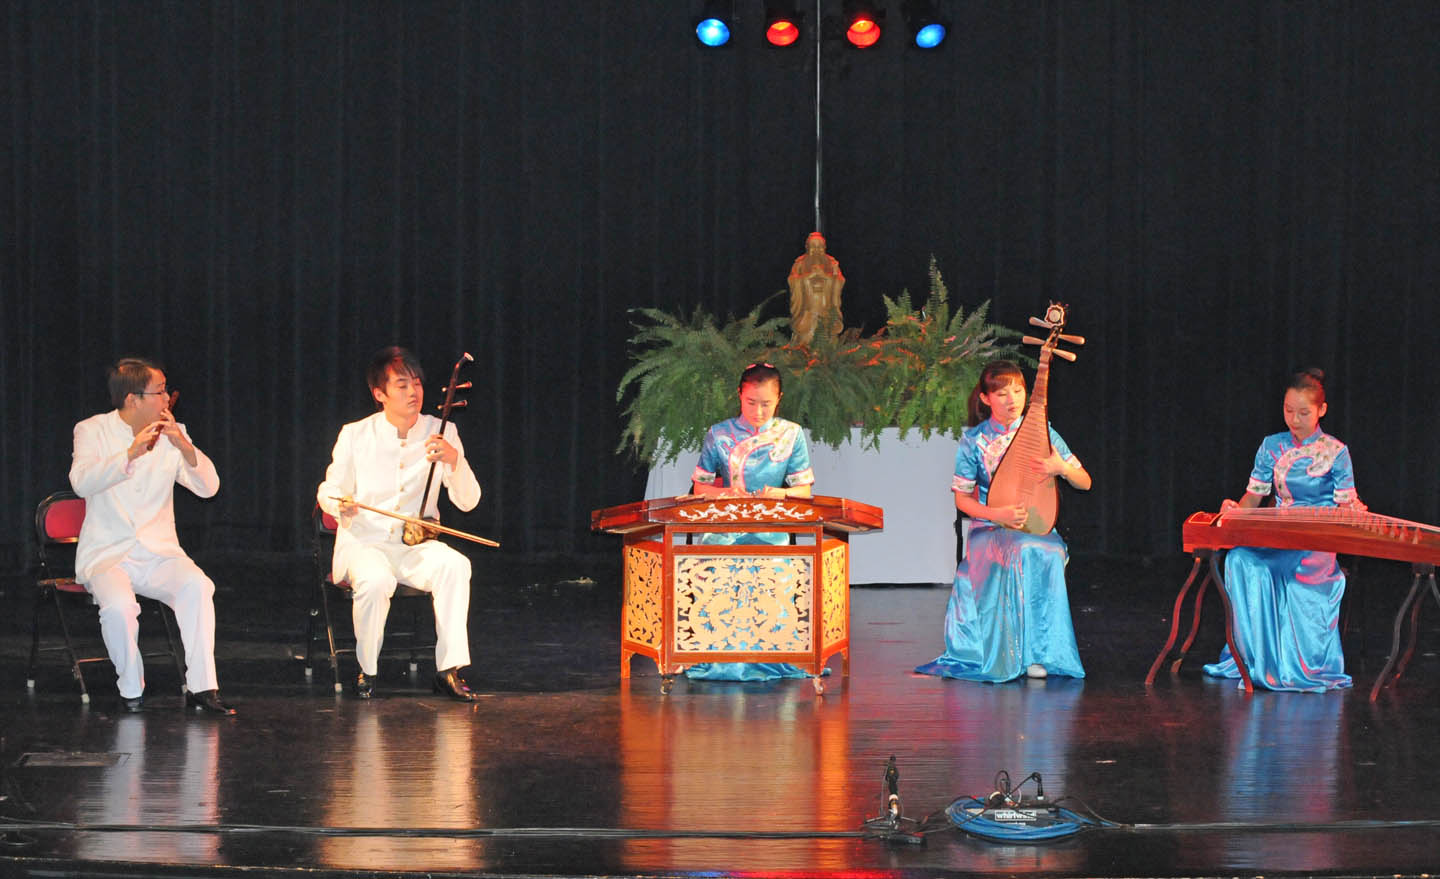 Read the full story, Chinese concert wows audience